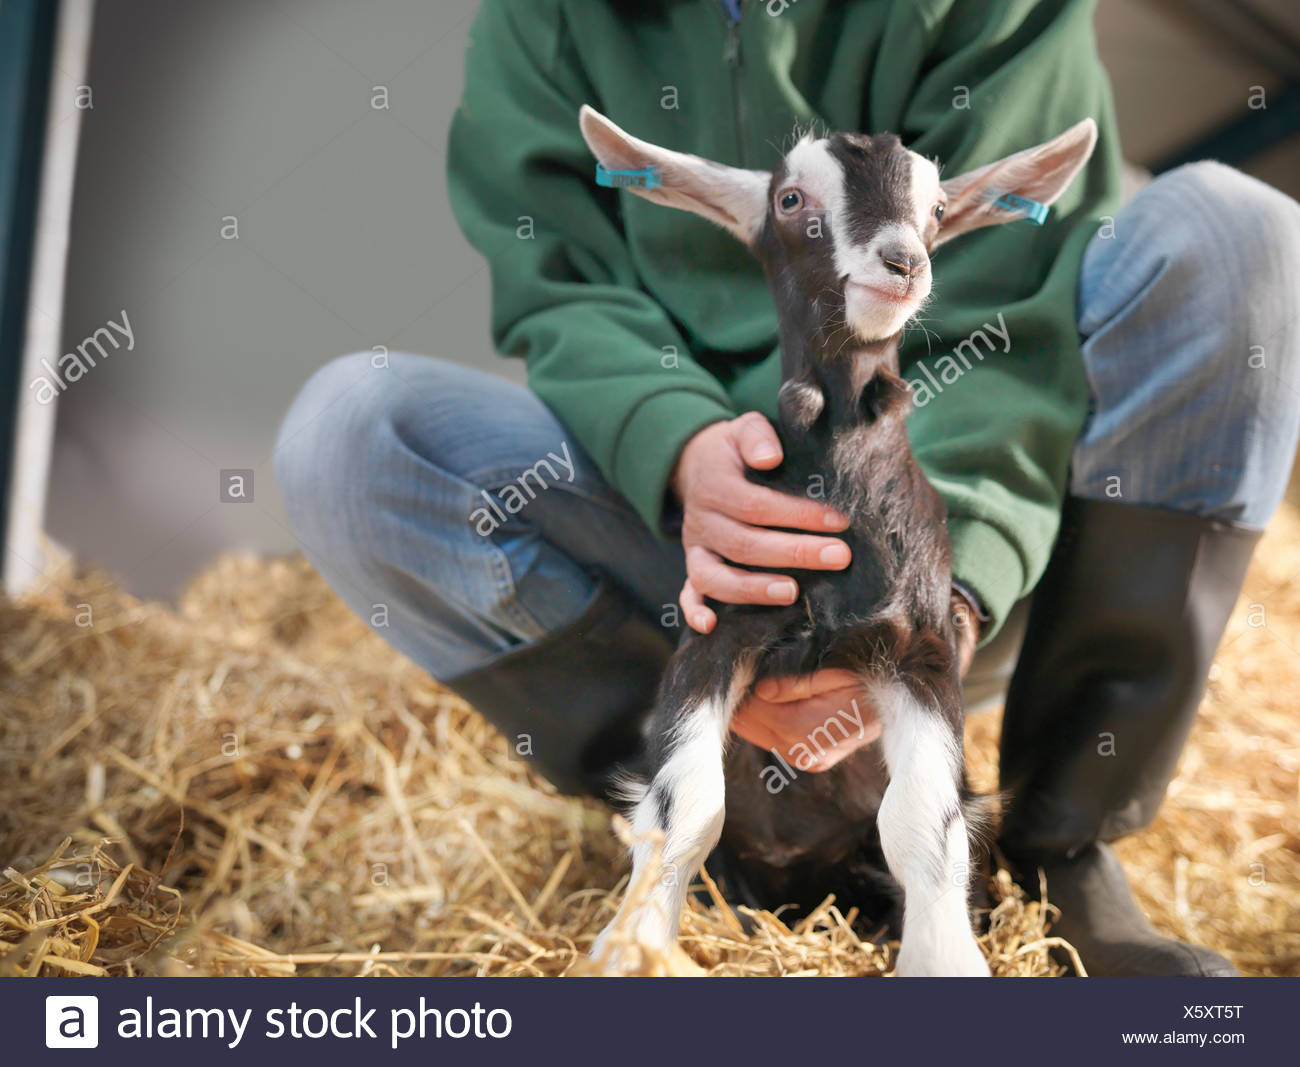 Worker holding kid goat on farm - Stock Image